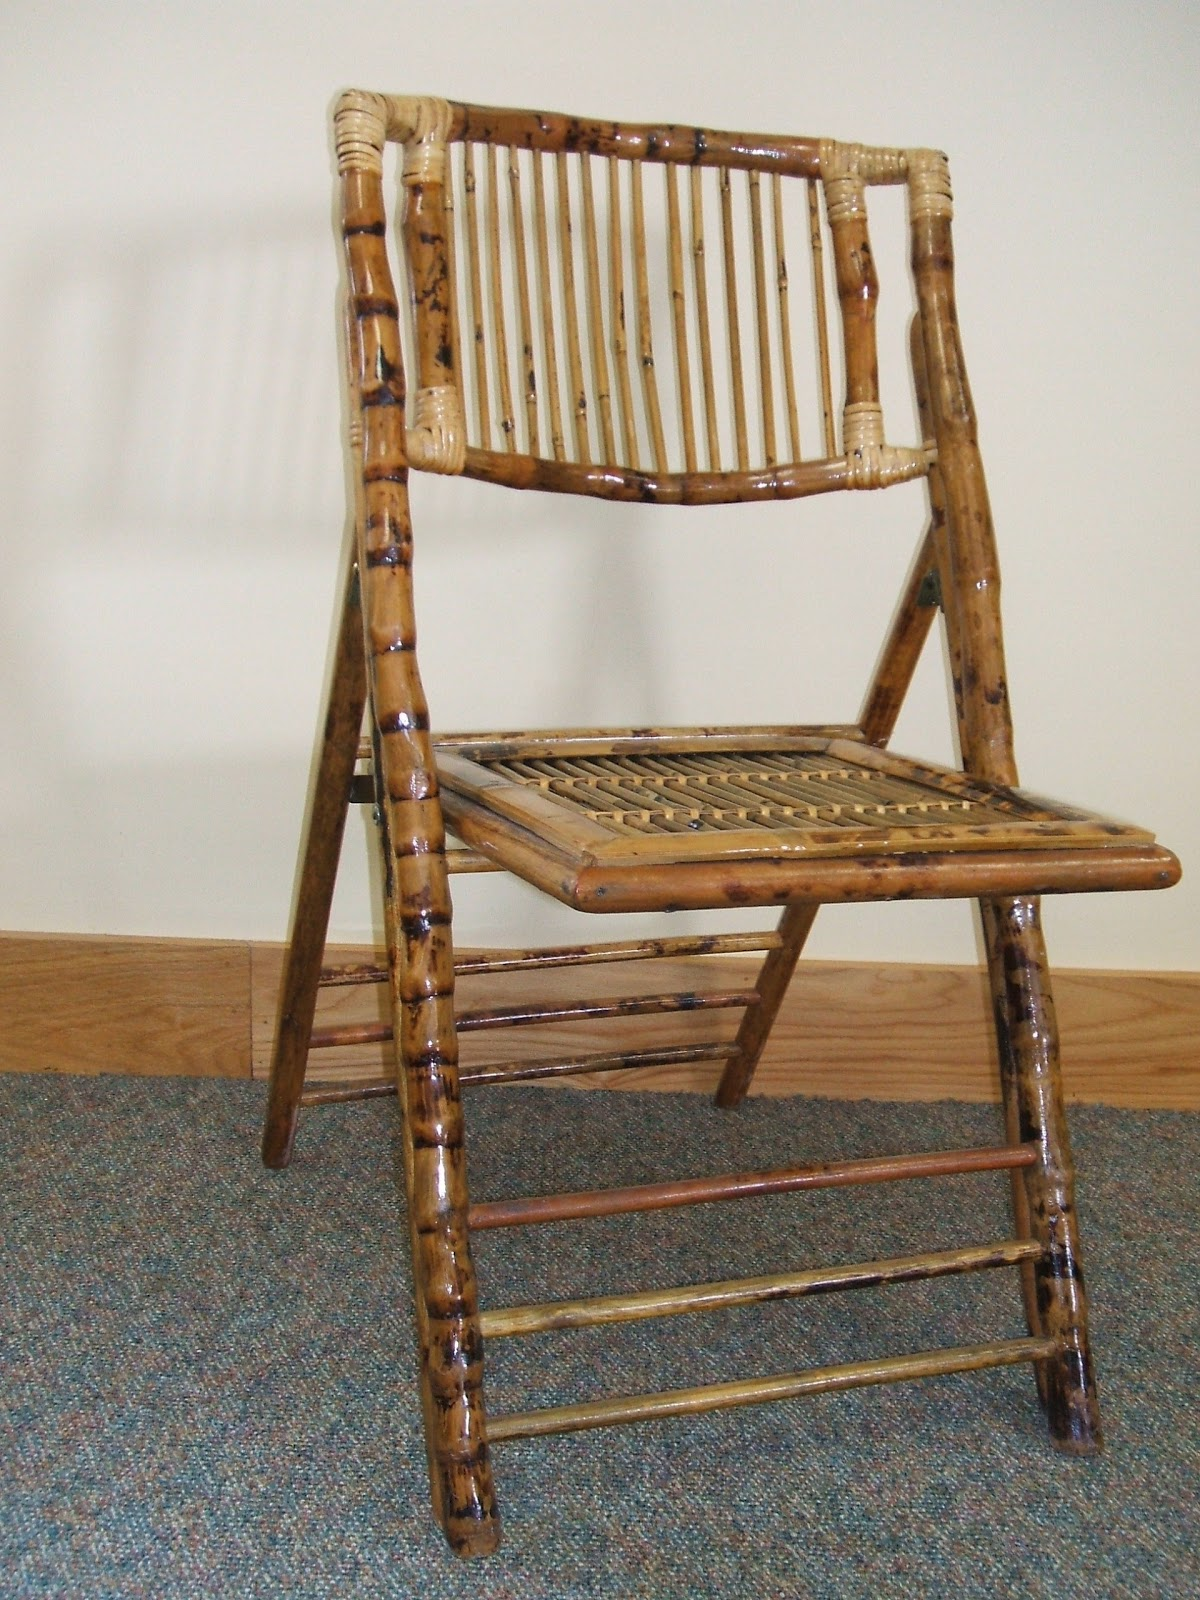 Bamboo Chairs Bamboo Craft Photo